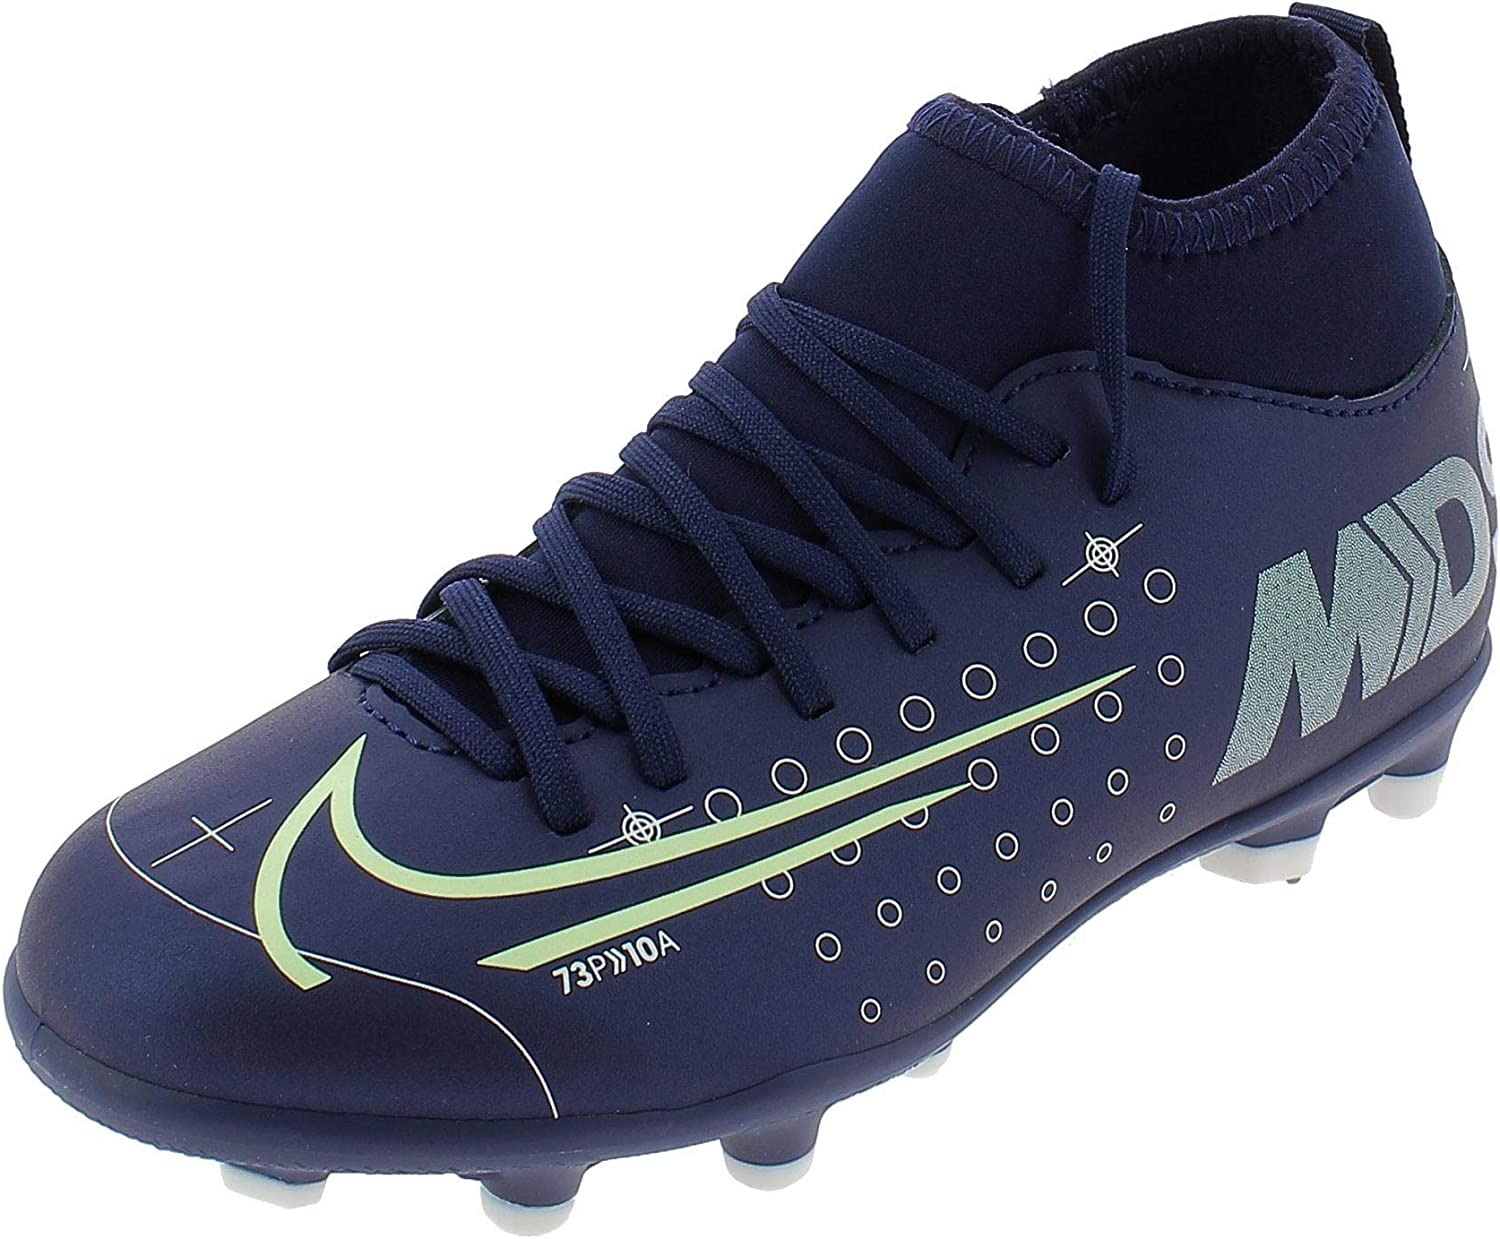 Dormido La oficina adjetivo  Amazon.com: Nike Jr. Mercurial Superfly 7 Club MDS MG Youth Soccer Cleats  (6) Blue: Shoes